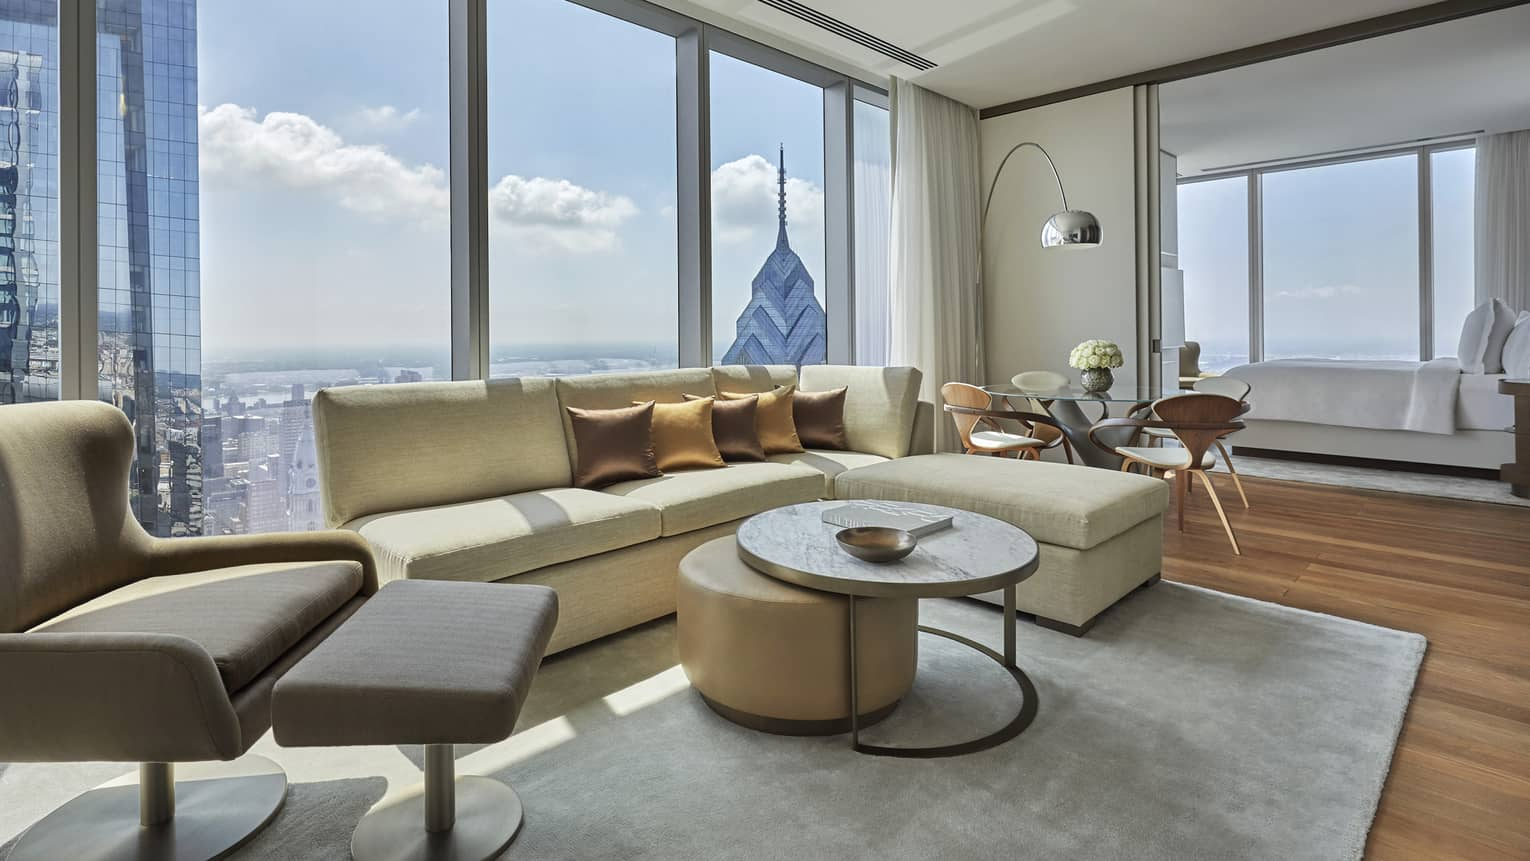 Modern living area with light yellow l-shaped sofa, arm chair, coffee table, Philadelphia city view